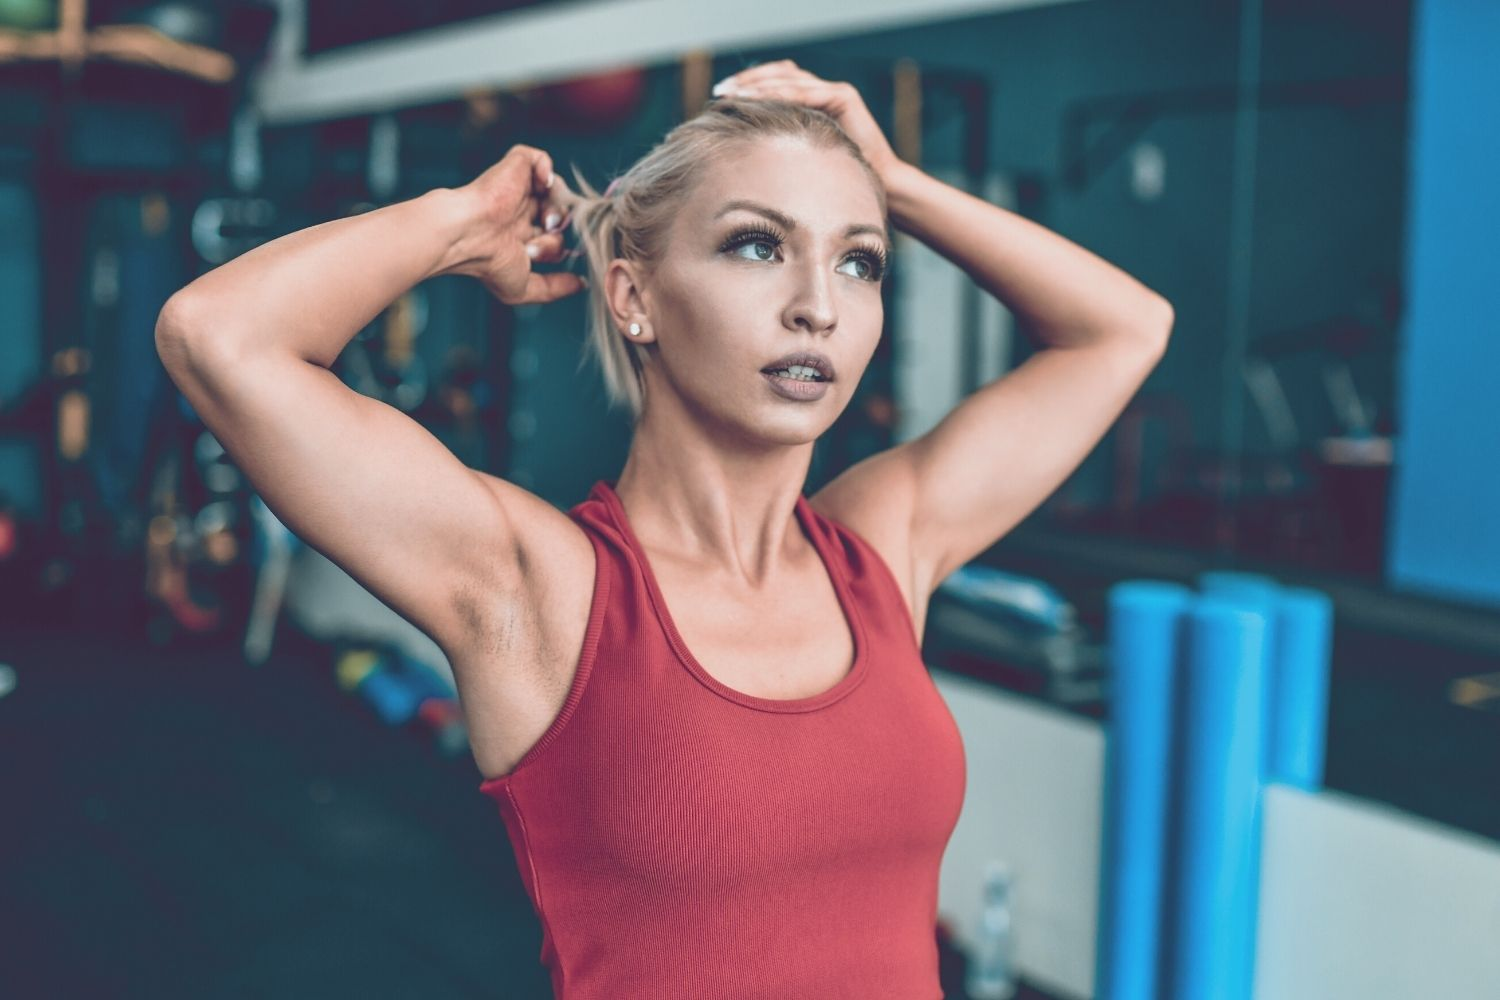 5 Ways to Avoid After-Gym Hair